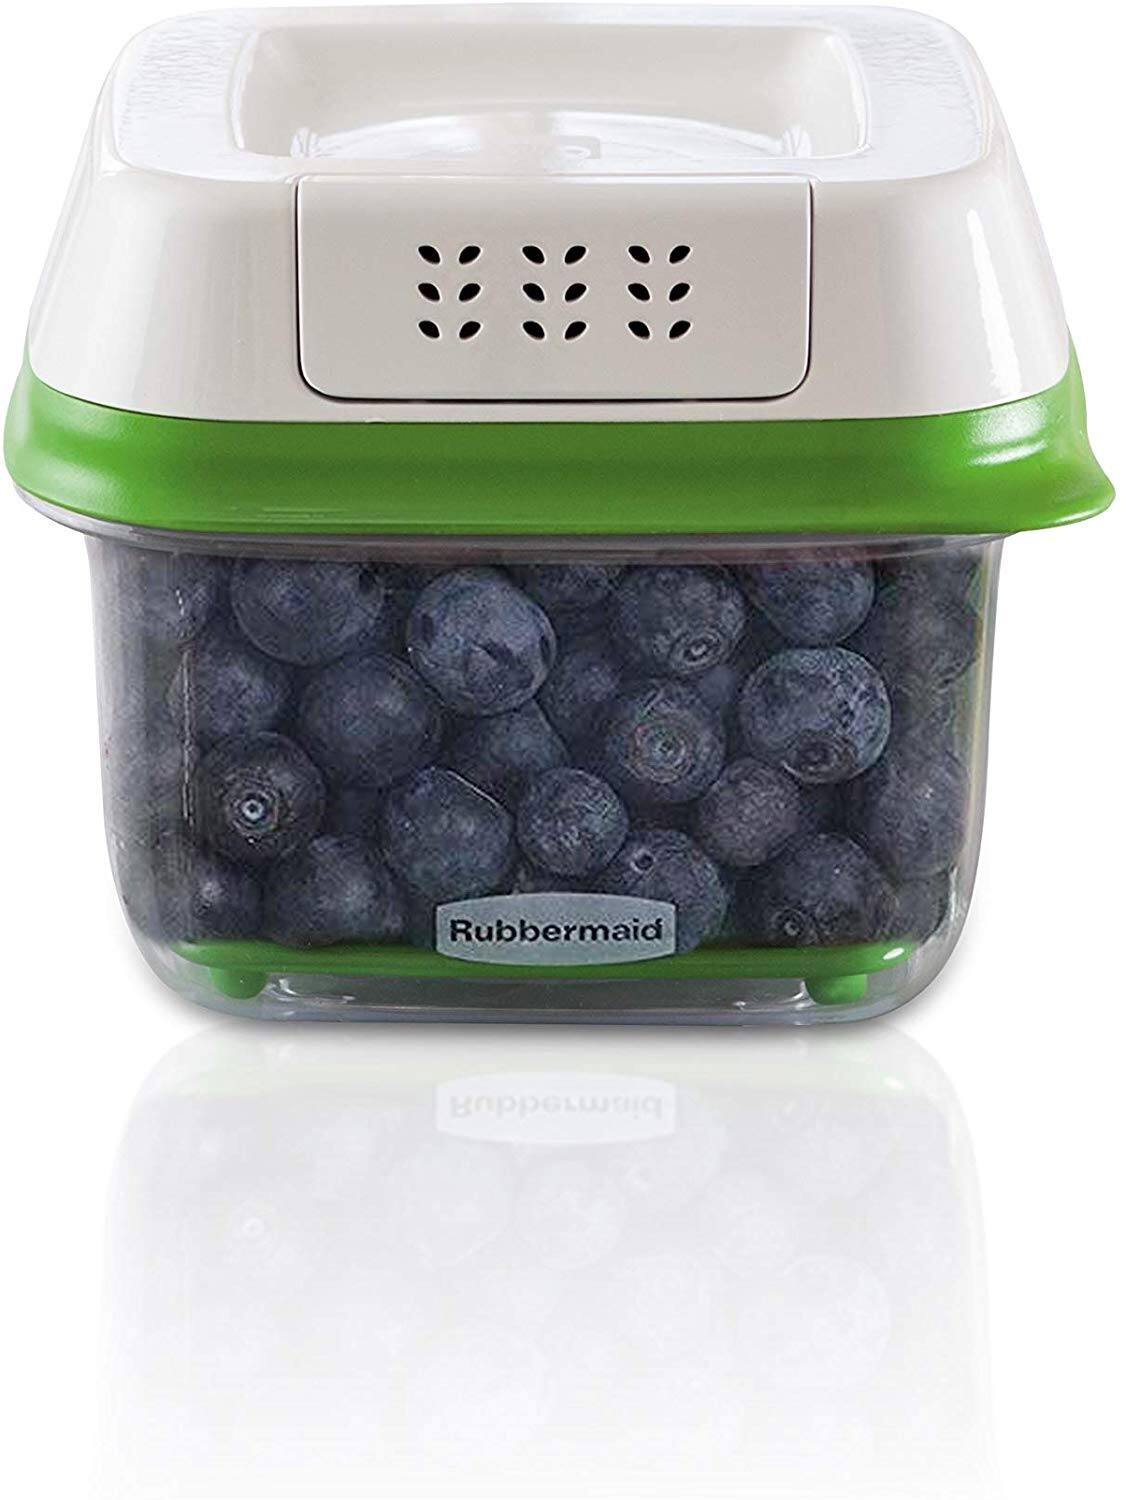 Rubbermaid FreshWorks Produce Saver Food Storage Container, Small Square, 2.5 Cup $4.95 & More - Amazon